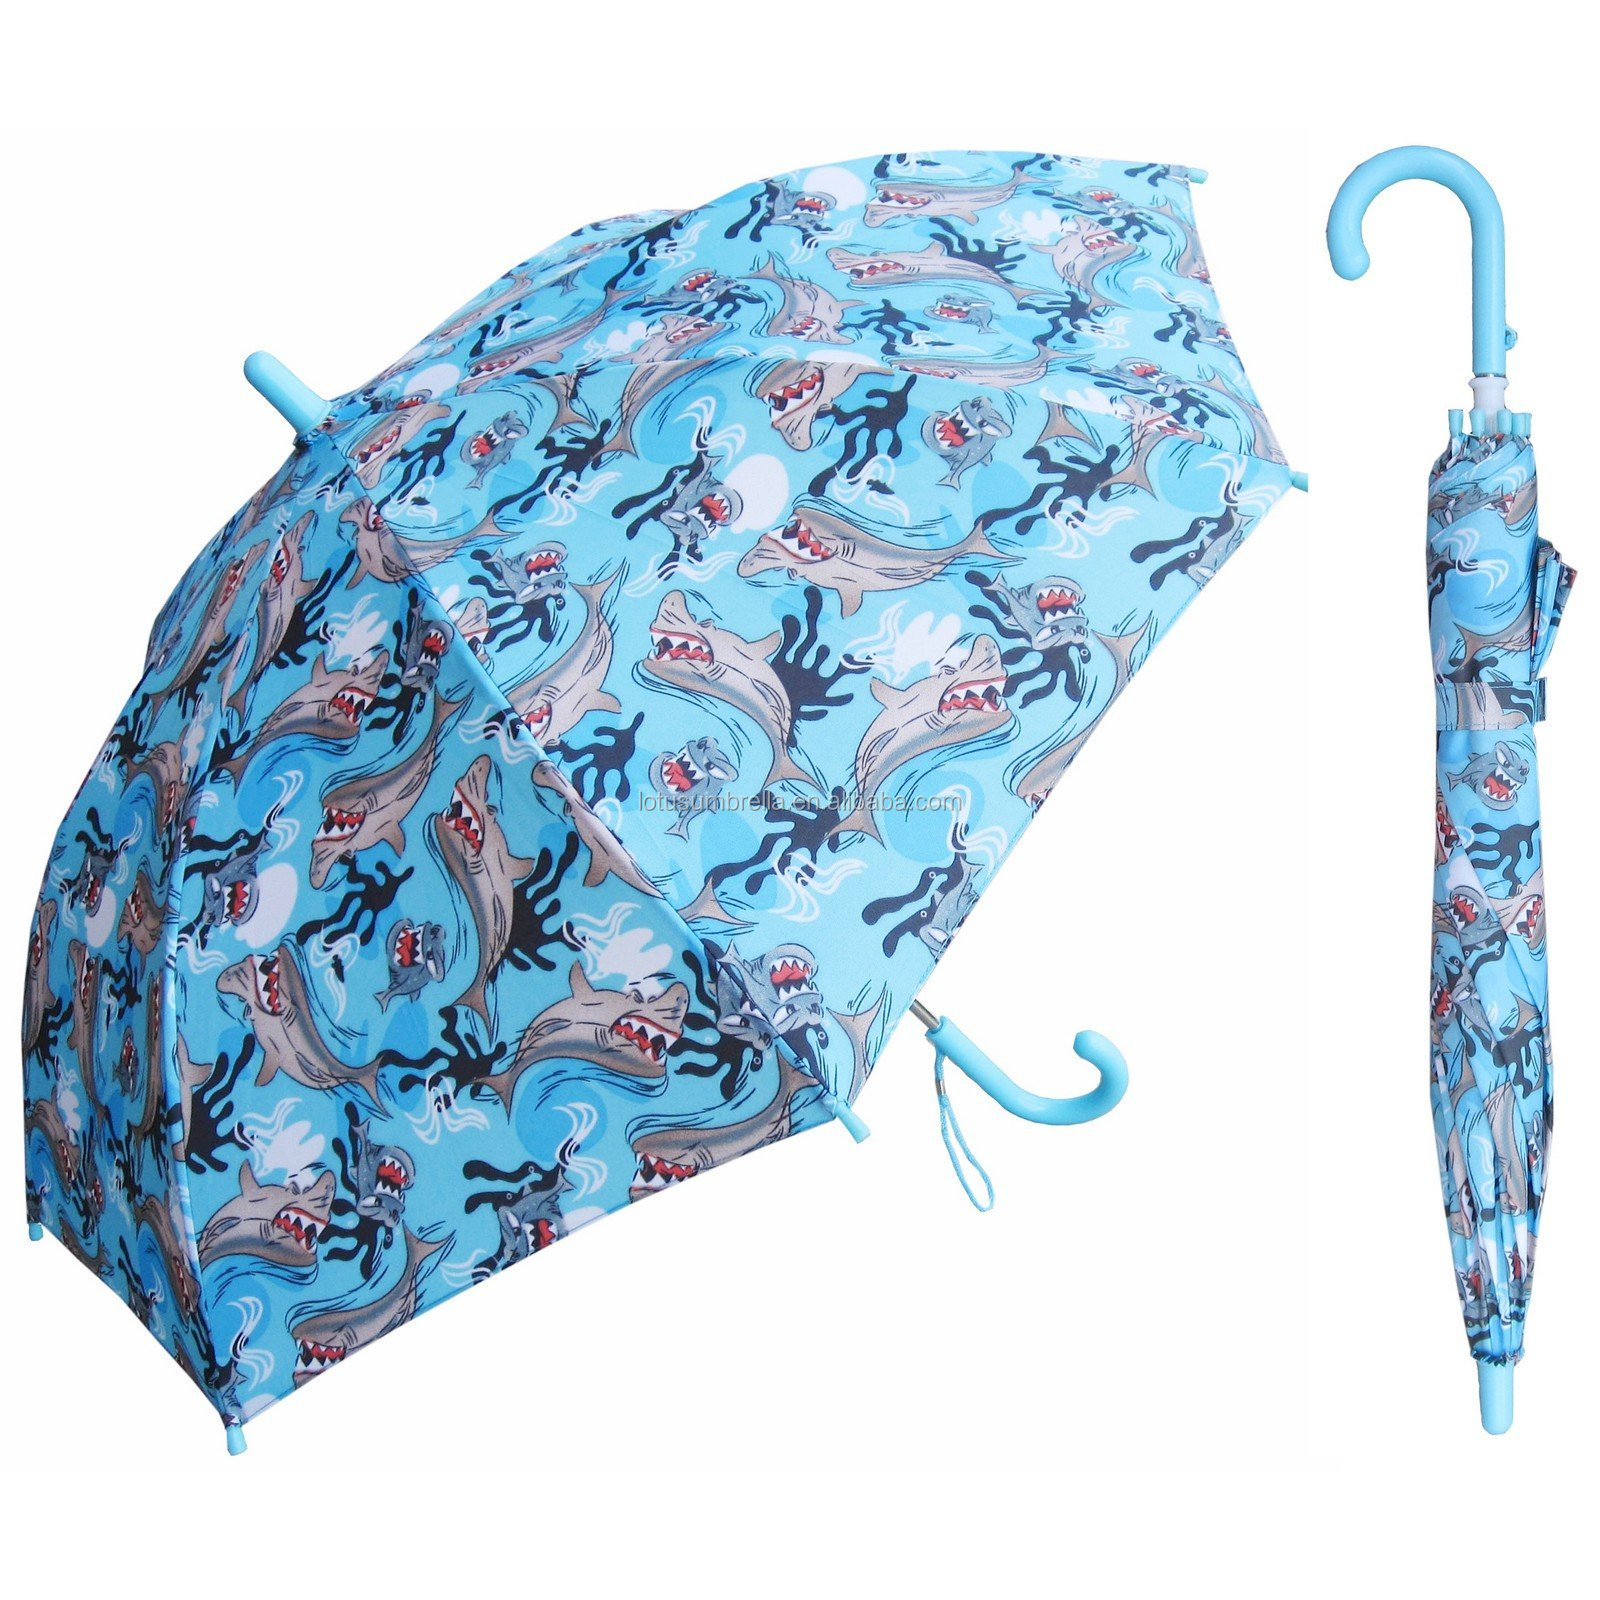 19Inch Color Full Print Customized Design Kids Umbrella With Flower Edge